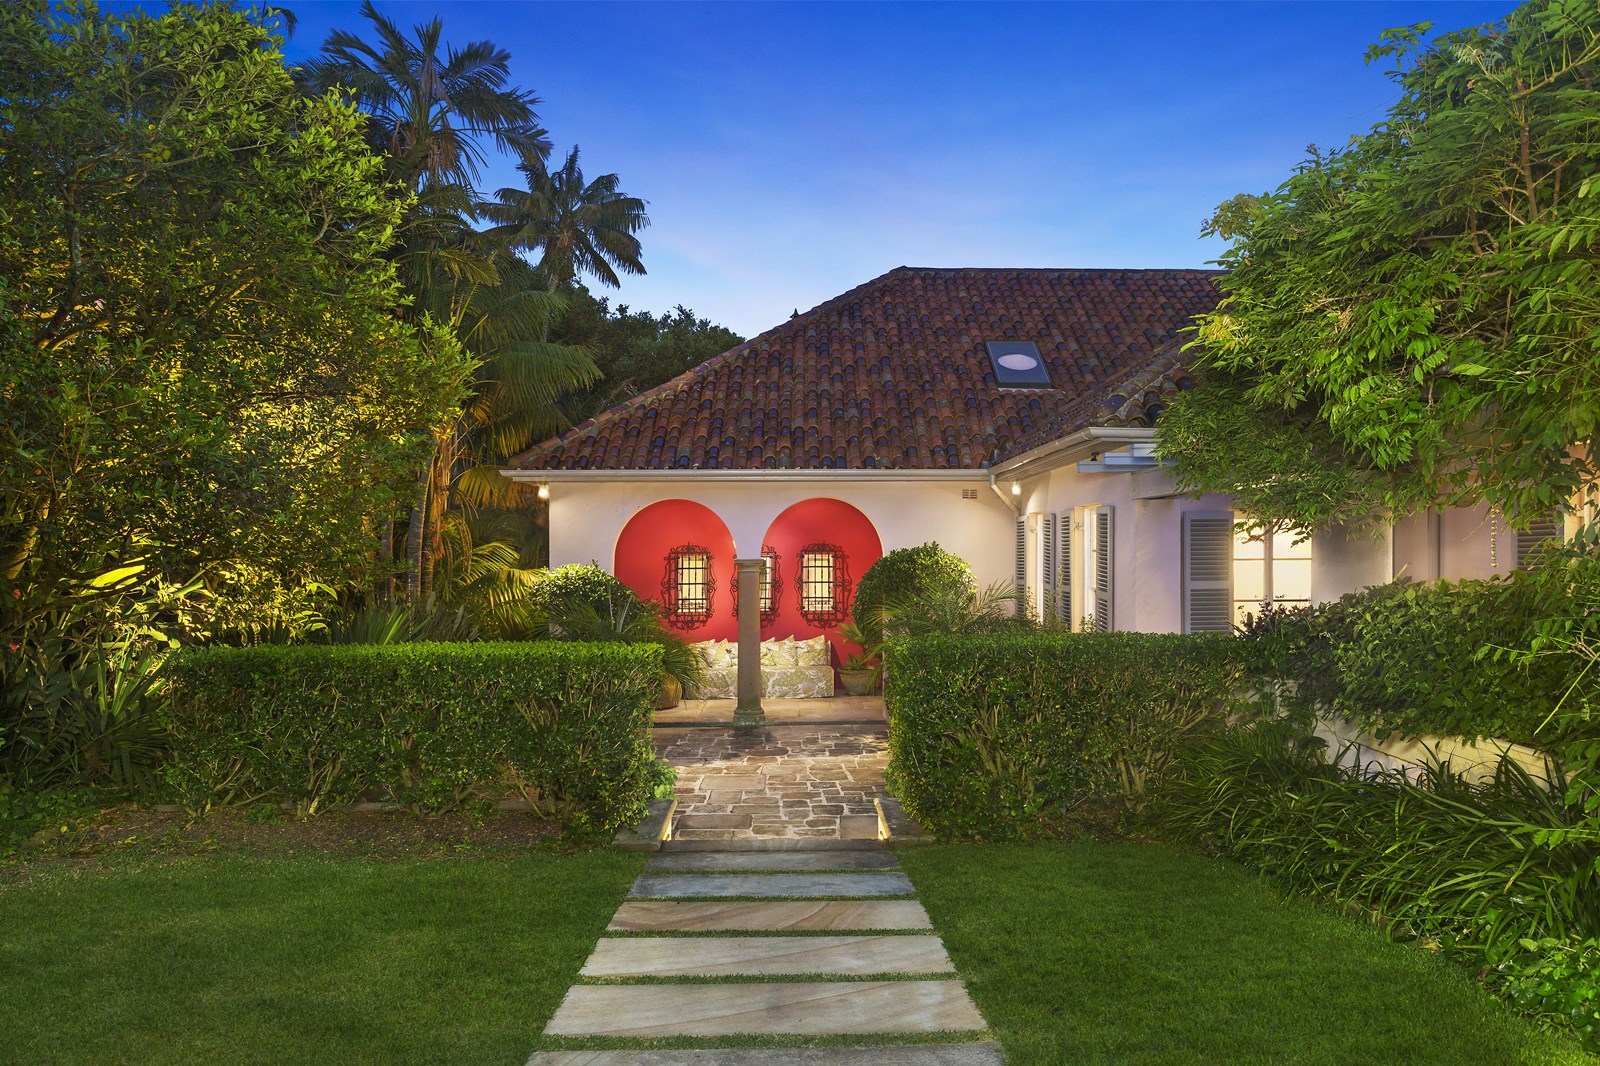 125 victoria road bellevue hill nsw 2023 house for sale for Where is bellevue hill